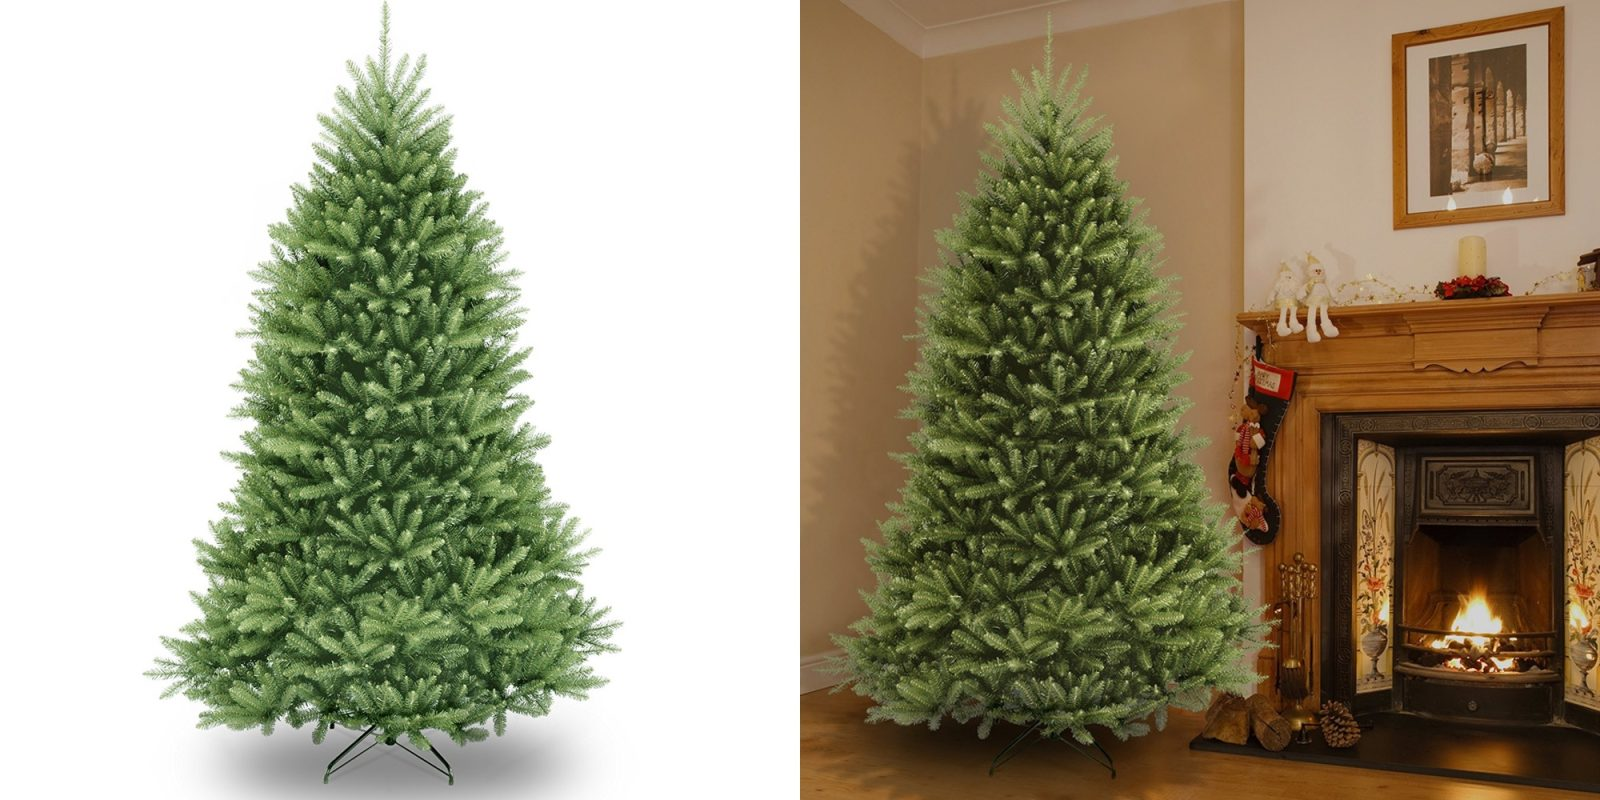 save on an artificial christmas tree from amazon 75 ft dunhill fir for 100 more - Amazon Artificial Christmas Trees